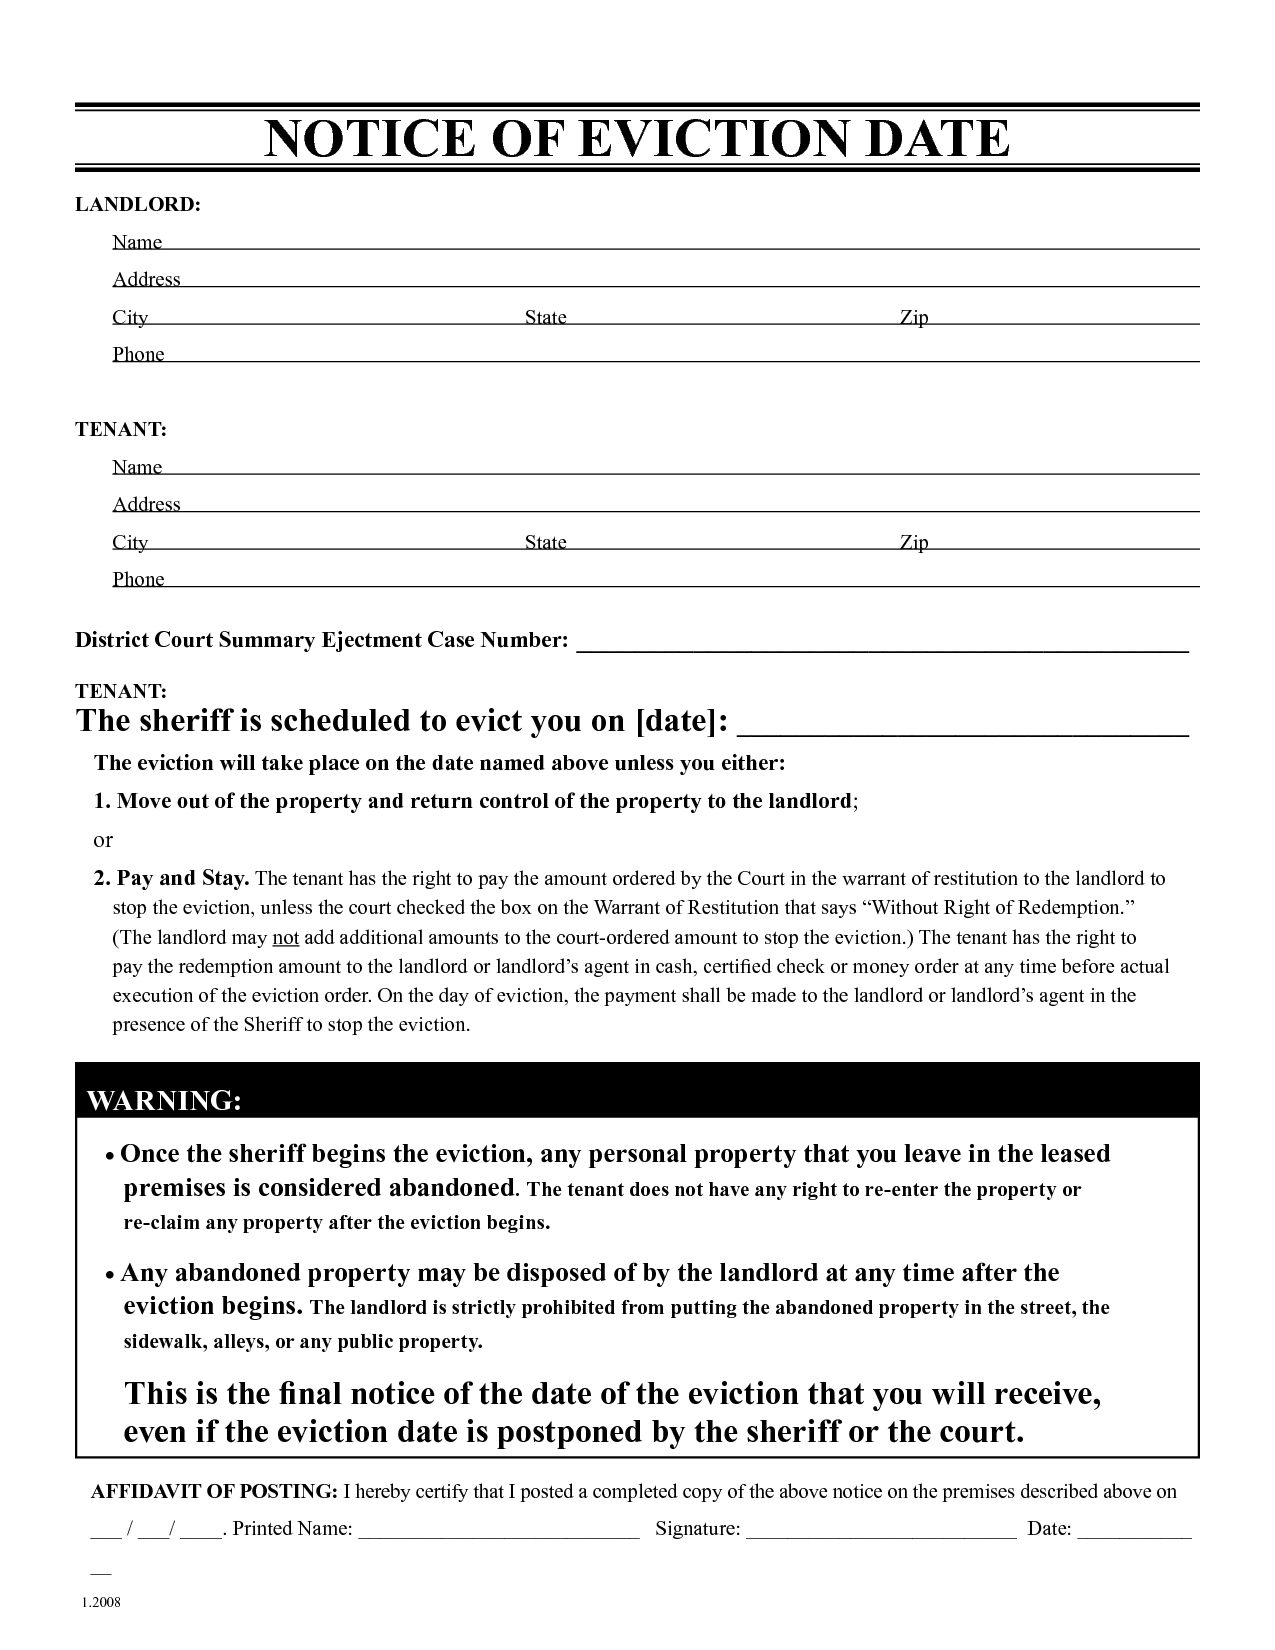 Free Eviction Notice Template printable eviction notice – 30 Eviction Notice Form